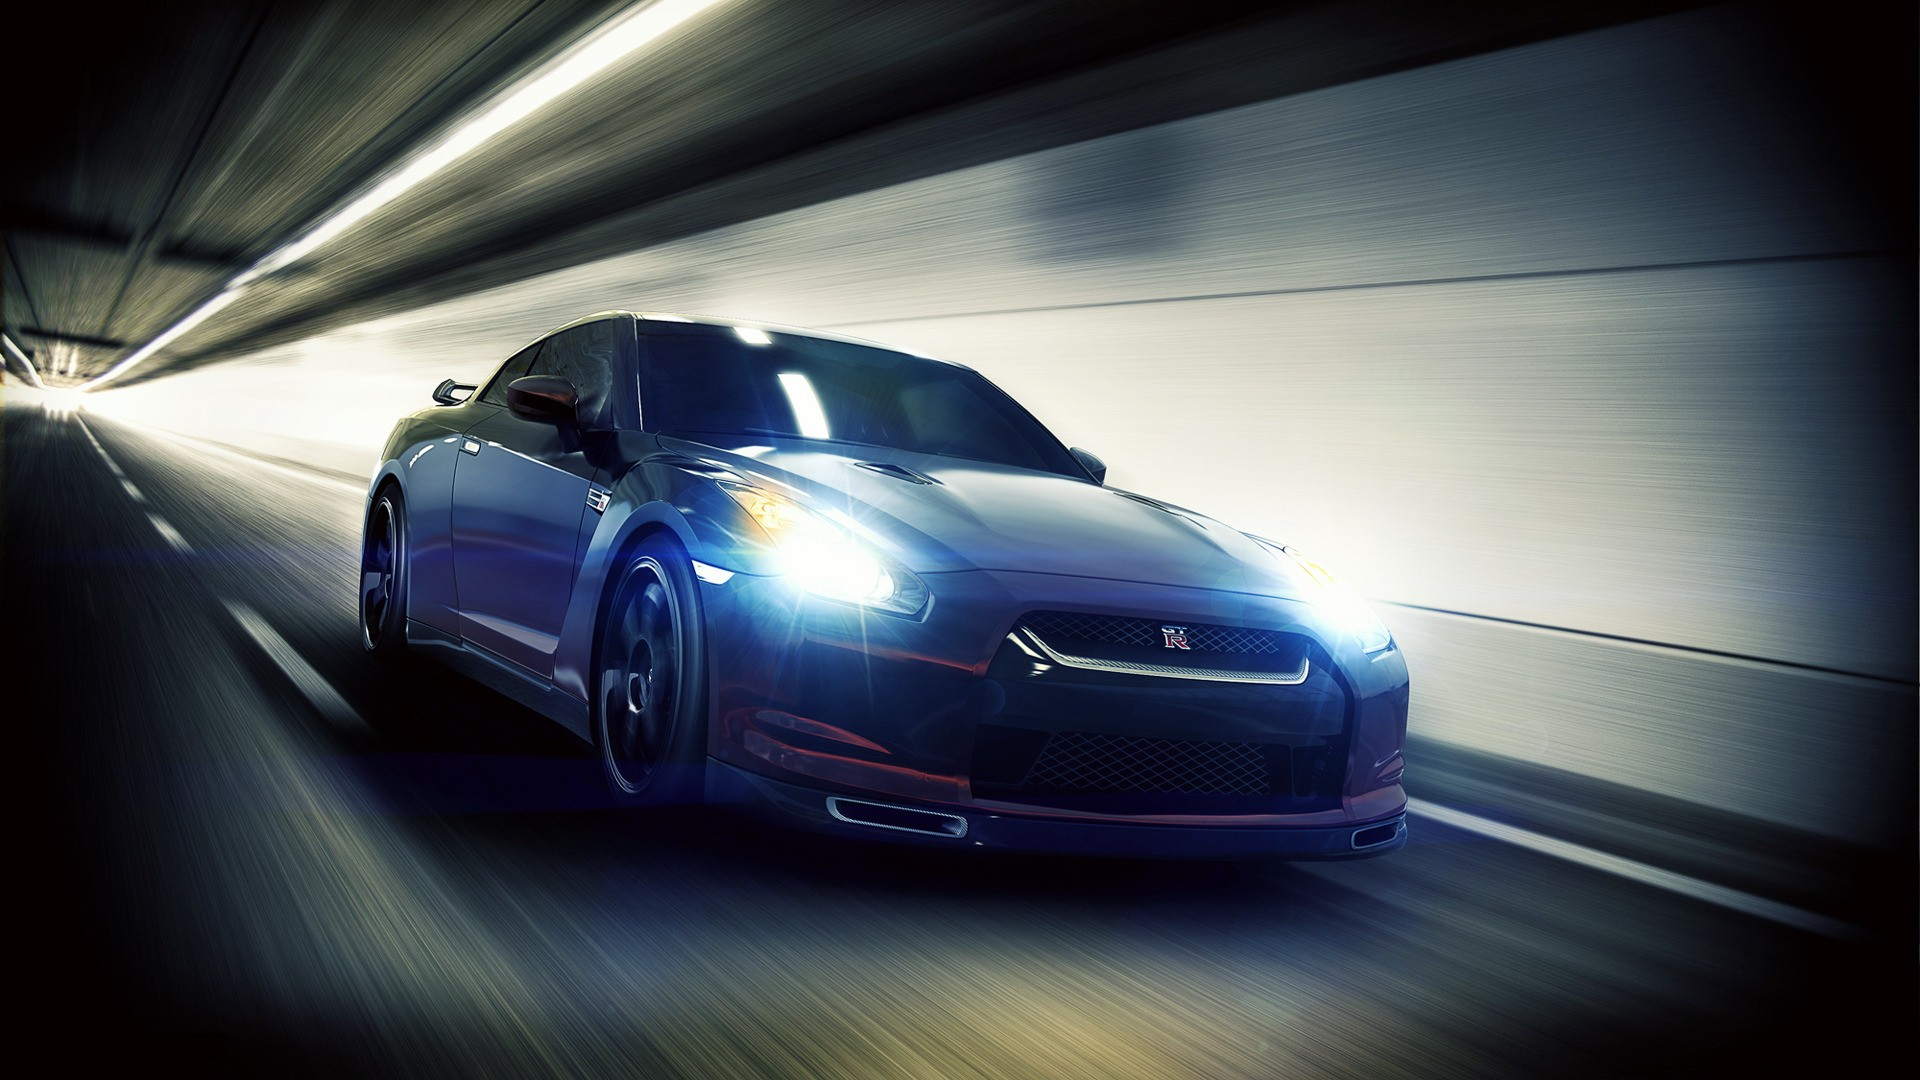 Download desktop wallpaper blue nissan gtr in the tunnel photo download voltagebd Image collections